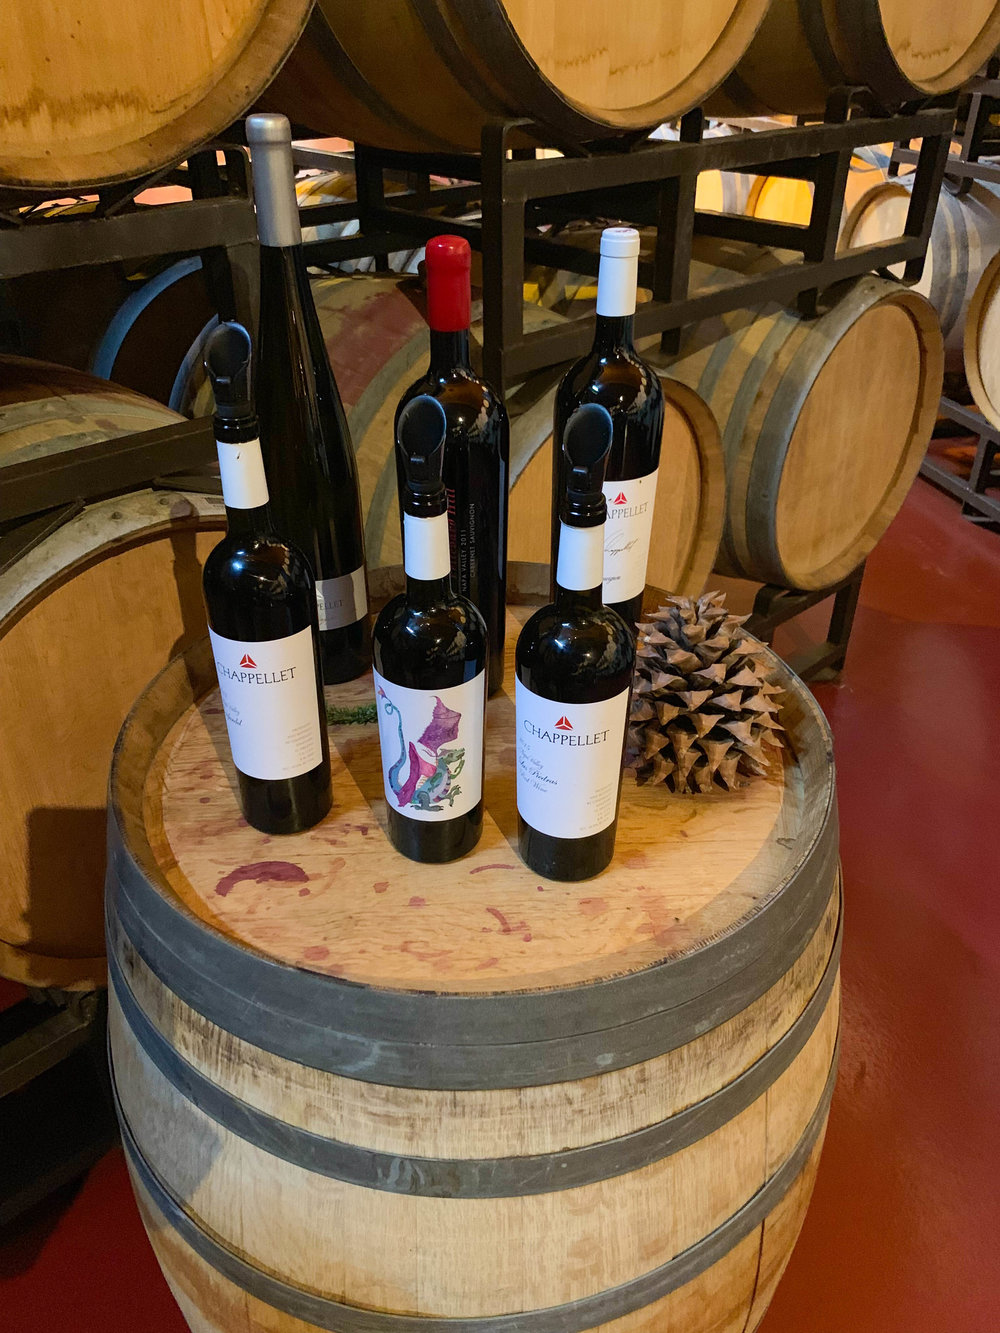 Chappellet Wine Tasting - Napa and Sonoma